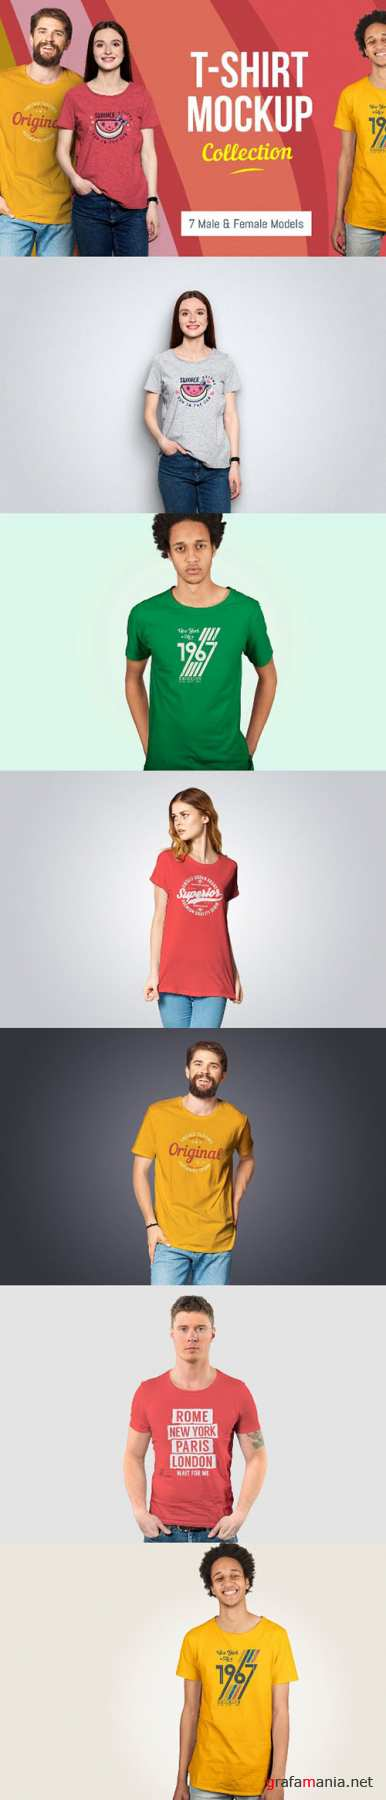 T-Shirt Mockup Collection PSD